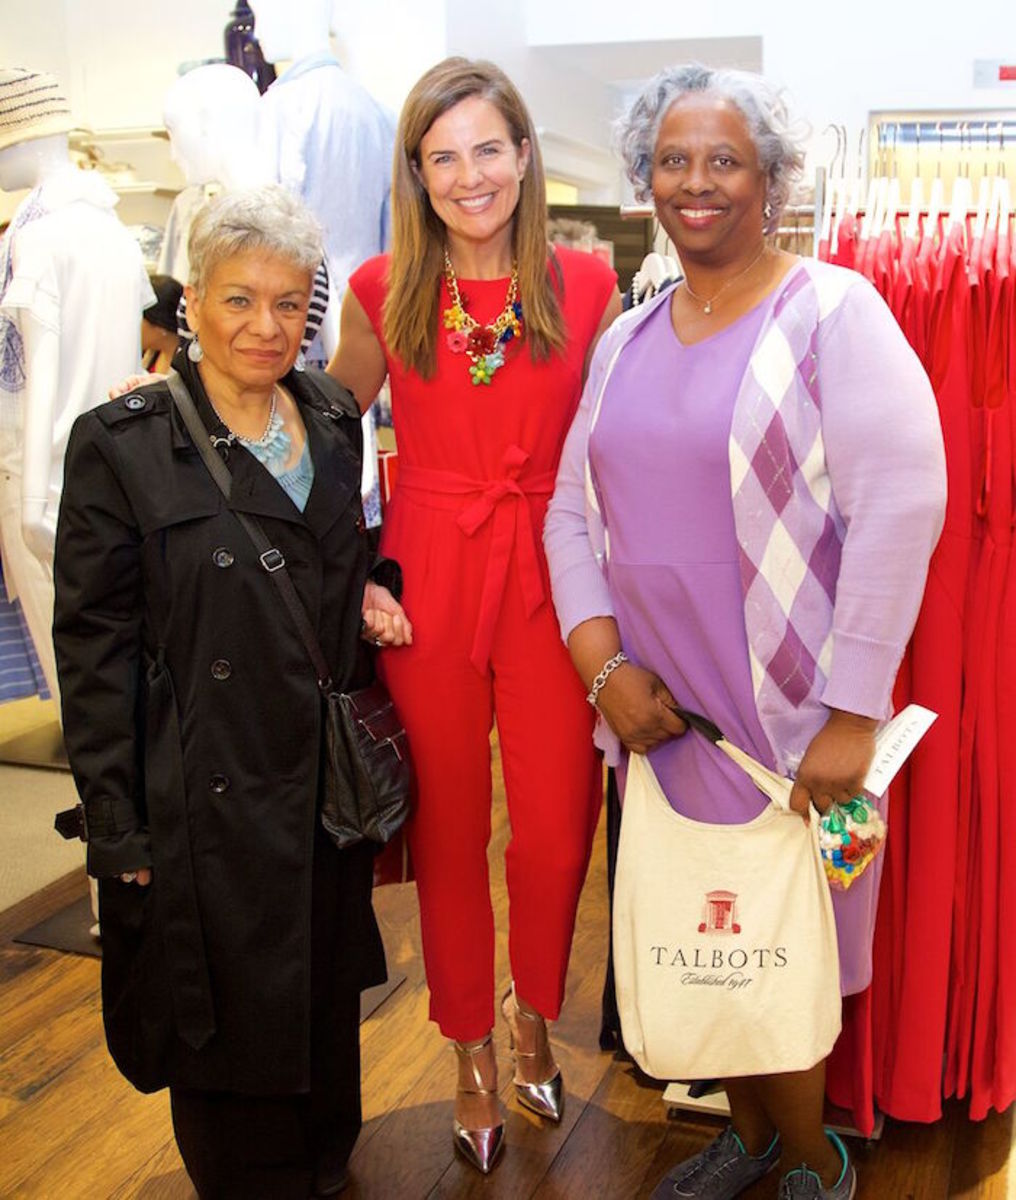 talbots shopping event